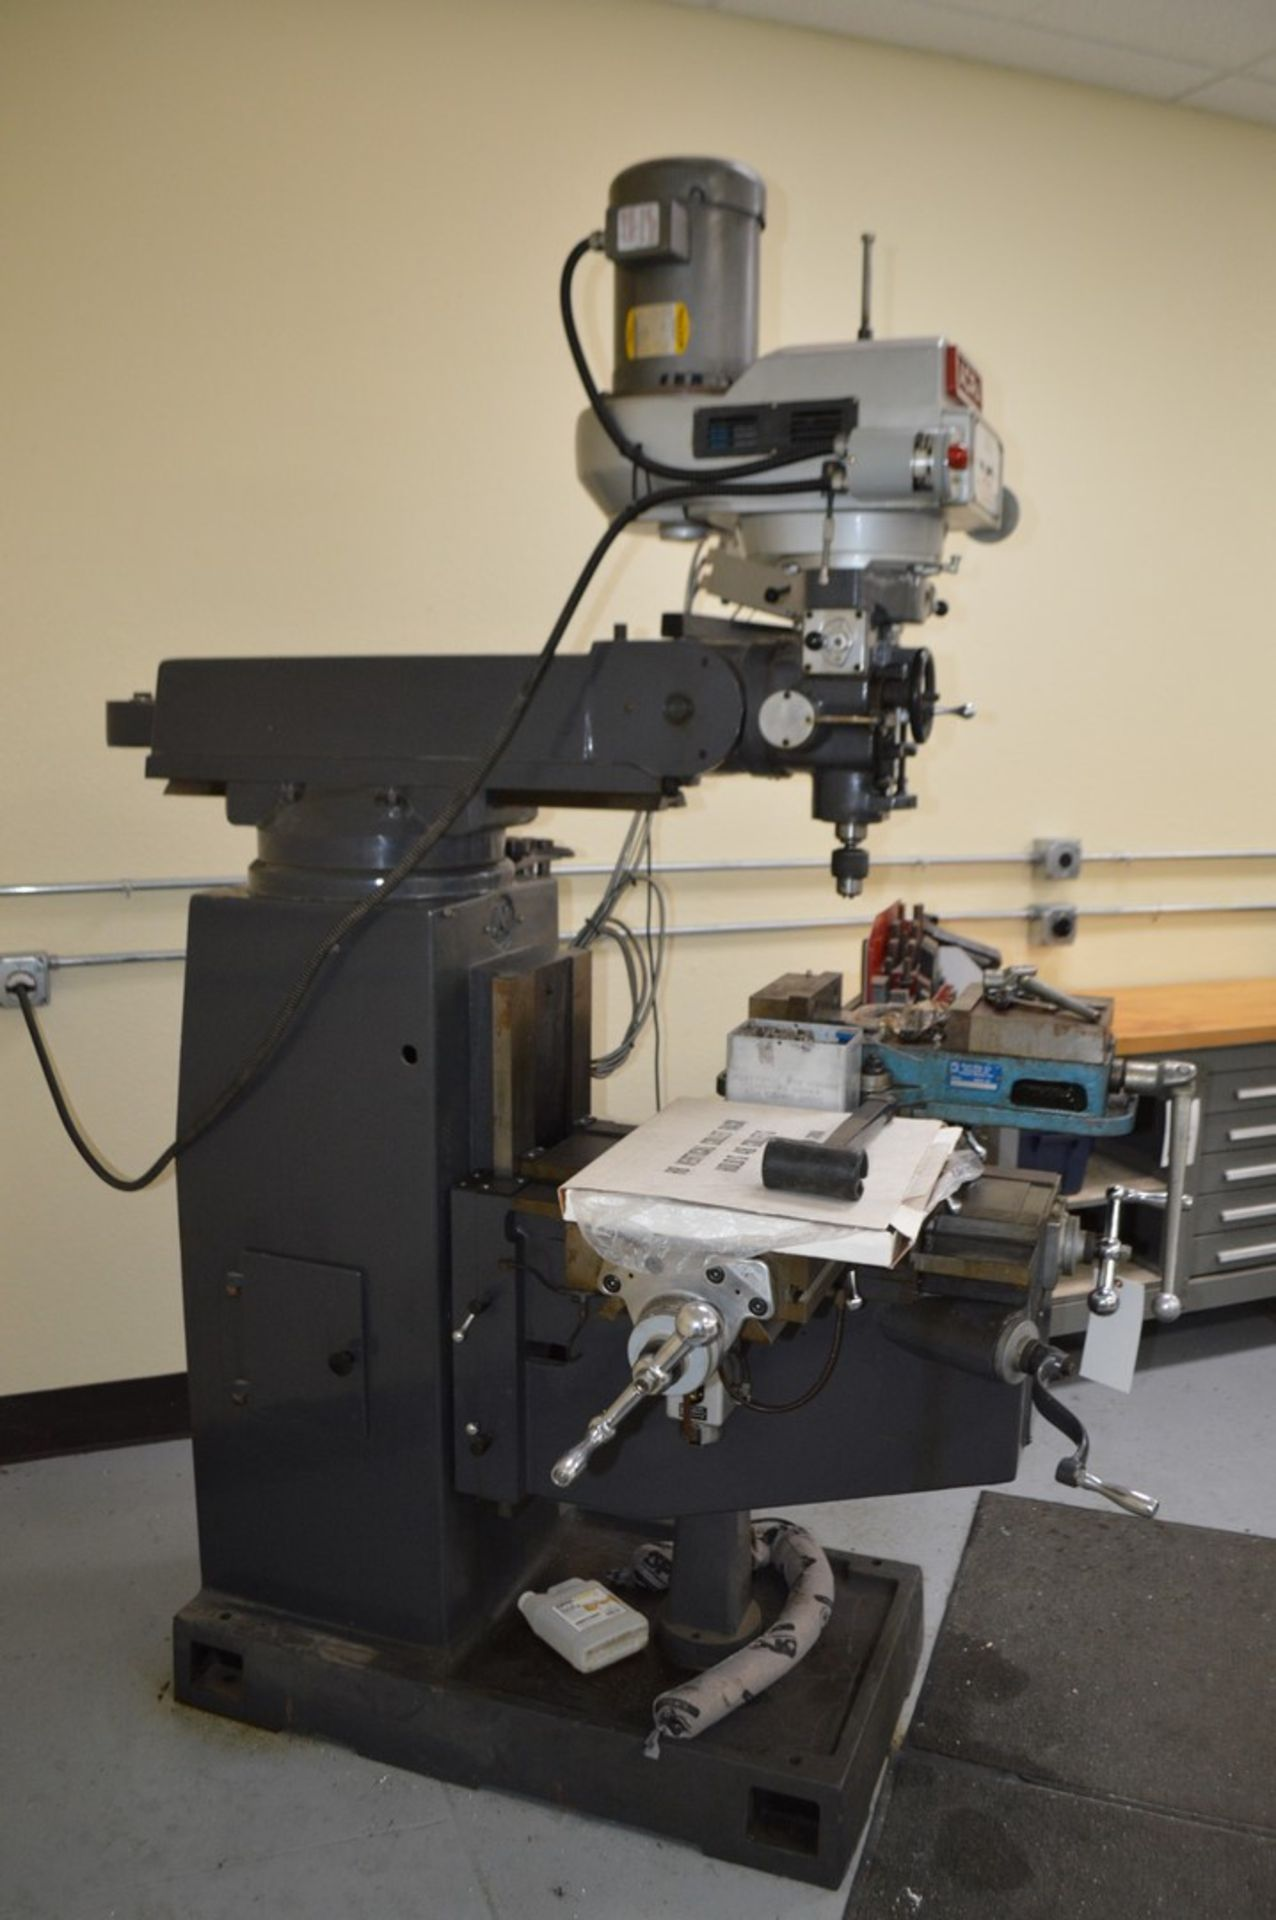 Acer 3 Axis knee mill, tilting head, 2 speed, sony magnescale DRO, Milling setup set, table - Image 7 of 10